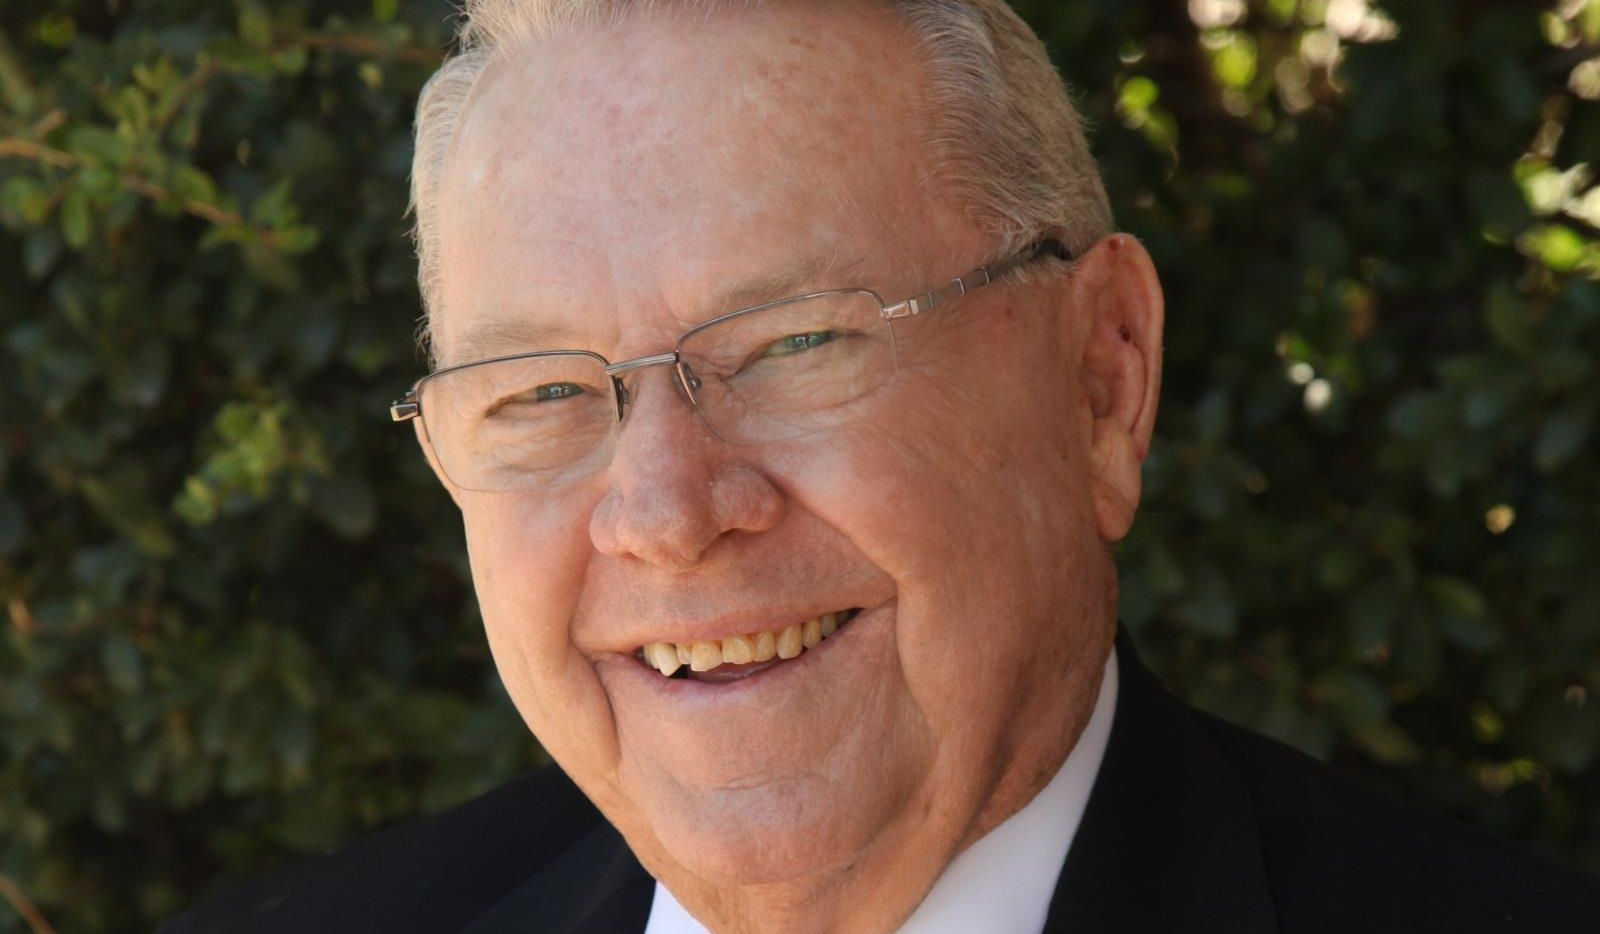 Longtime Grand Prairie City Council member Jim Swafford died after being hospitalized with COVID-19, a month after his wife died of complications from the virus.